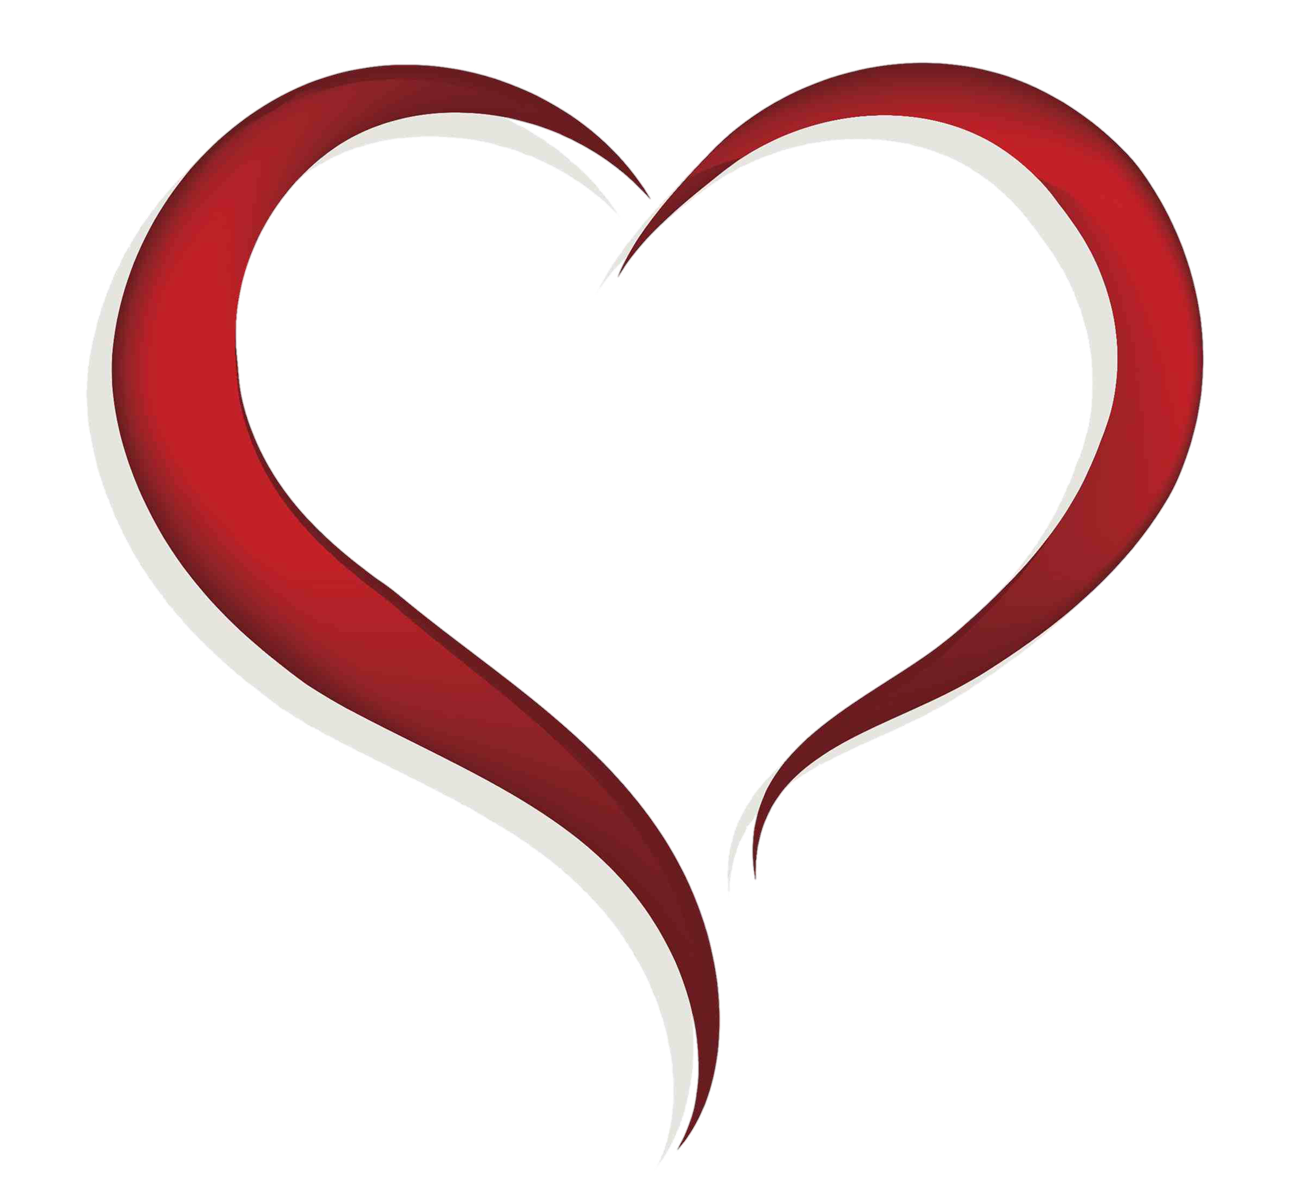 Free Heart Clip Art of Free heart clipart image for your personal projects,  presentations or web designs.